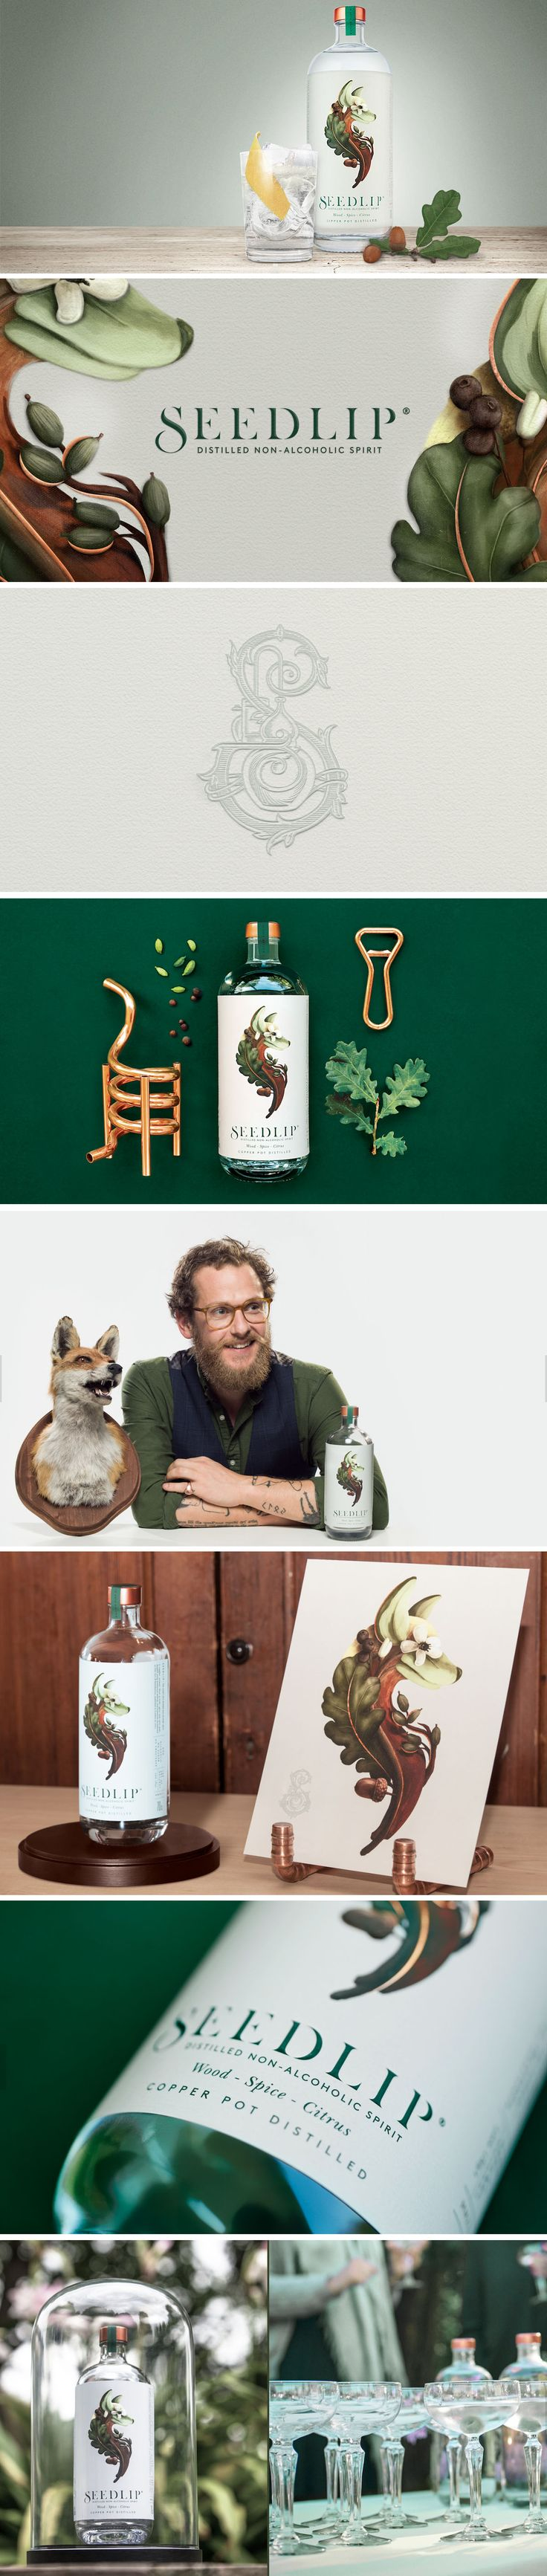 Pearlfisher has created the brand for the world's first distilled non-alcoholic spirit, Seedlip.